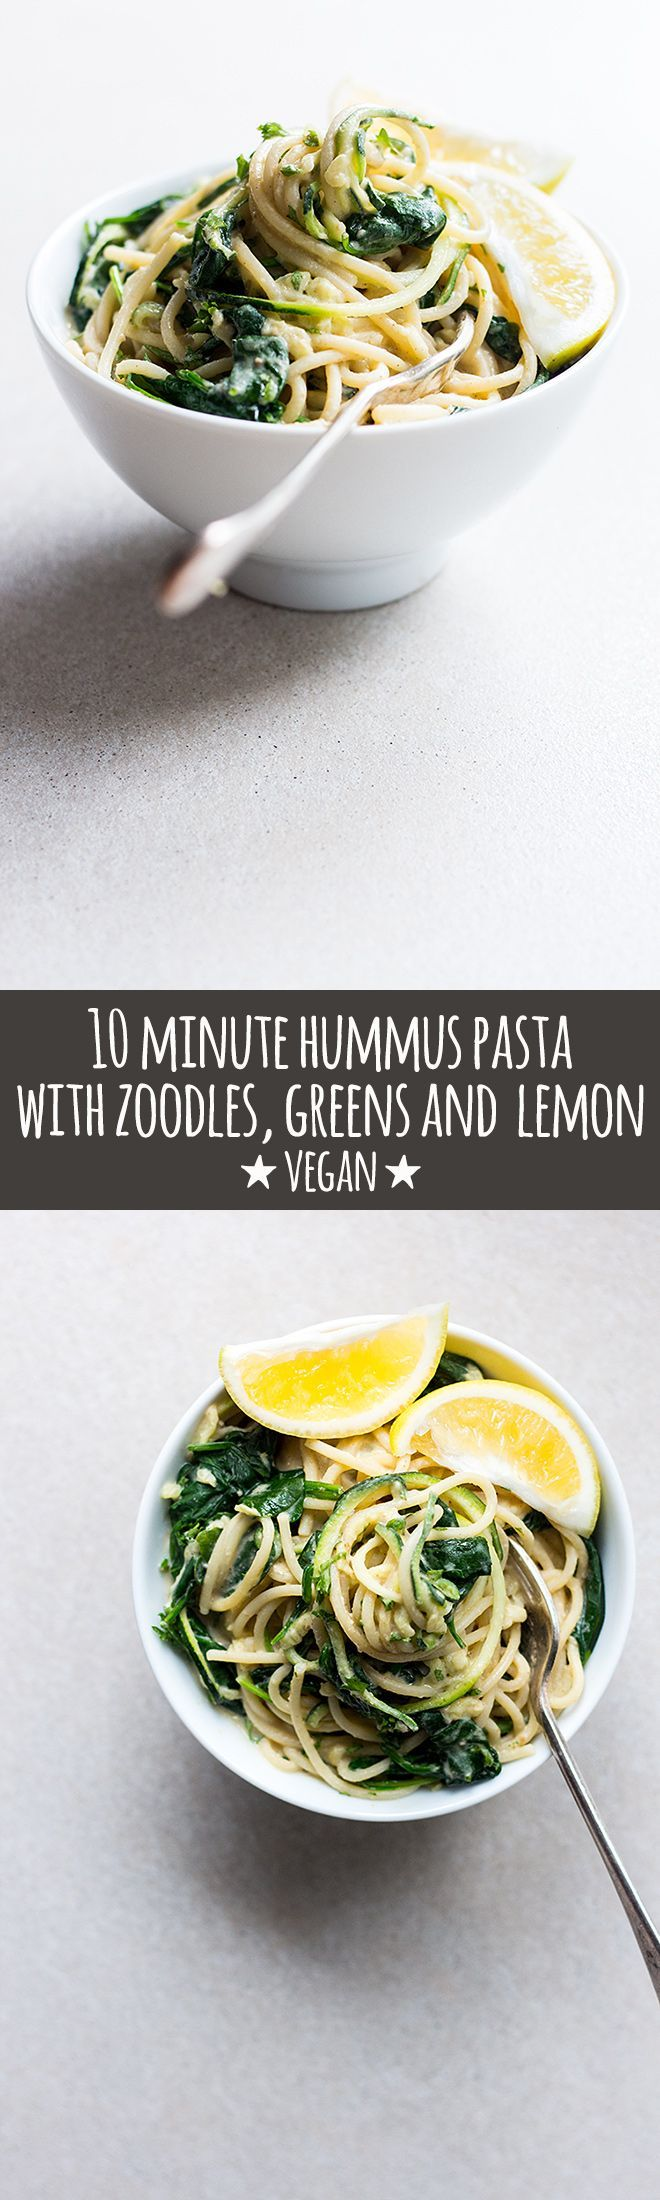 Hummus pasta tossed with zoodles, greens and lemon is an easy, high protein meal that's creamy, bright and lemony, and on the table in under 10 minutes via @Quite Good Food